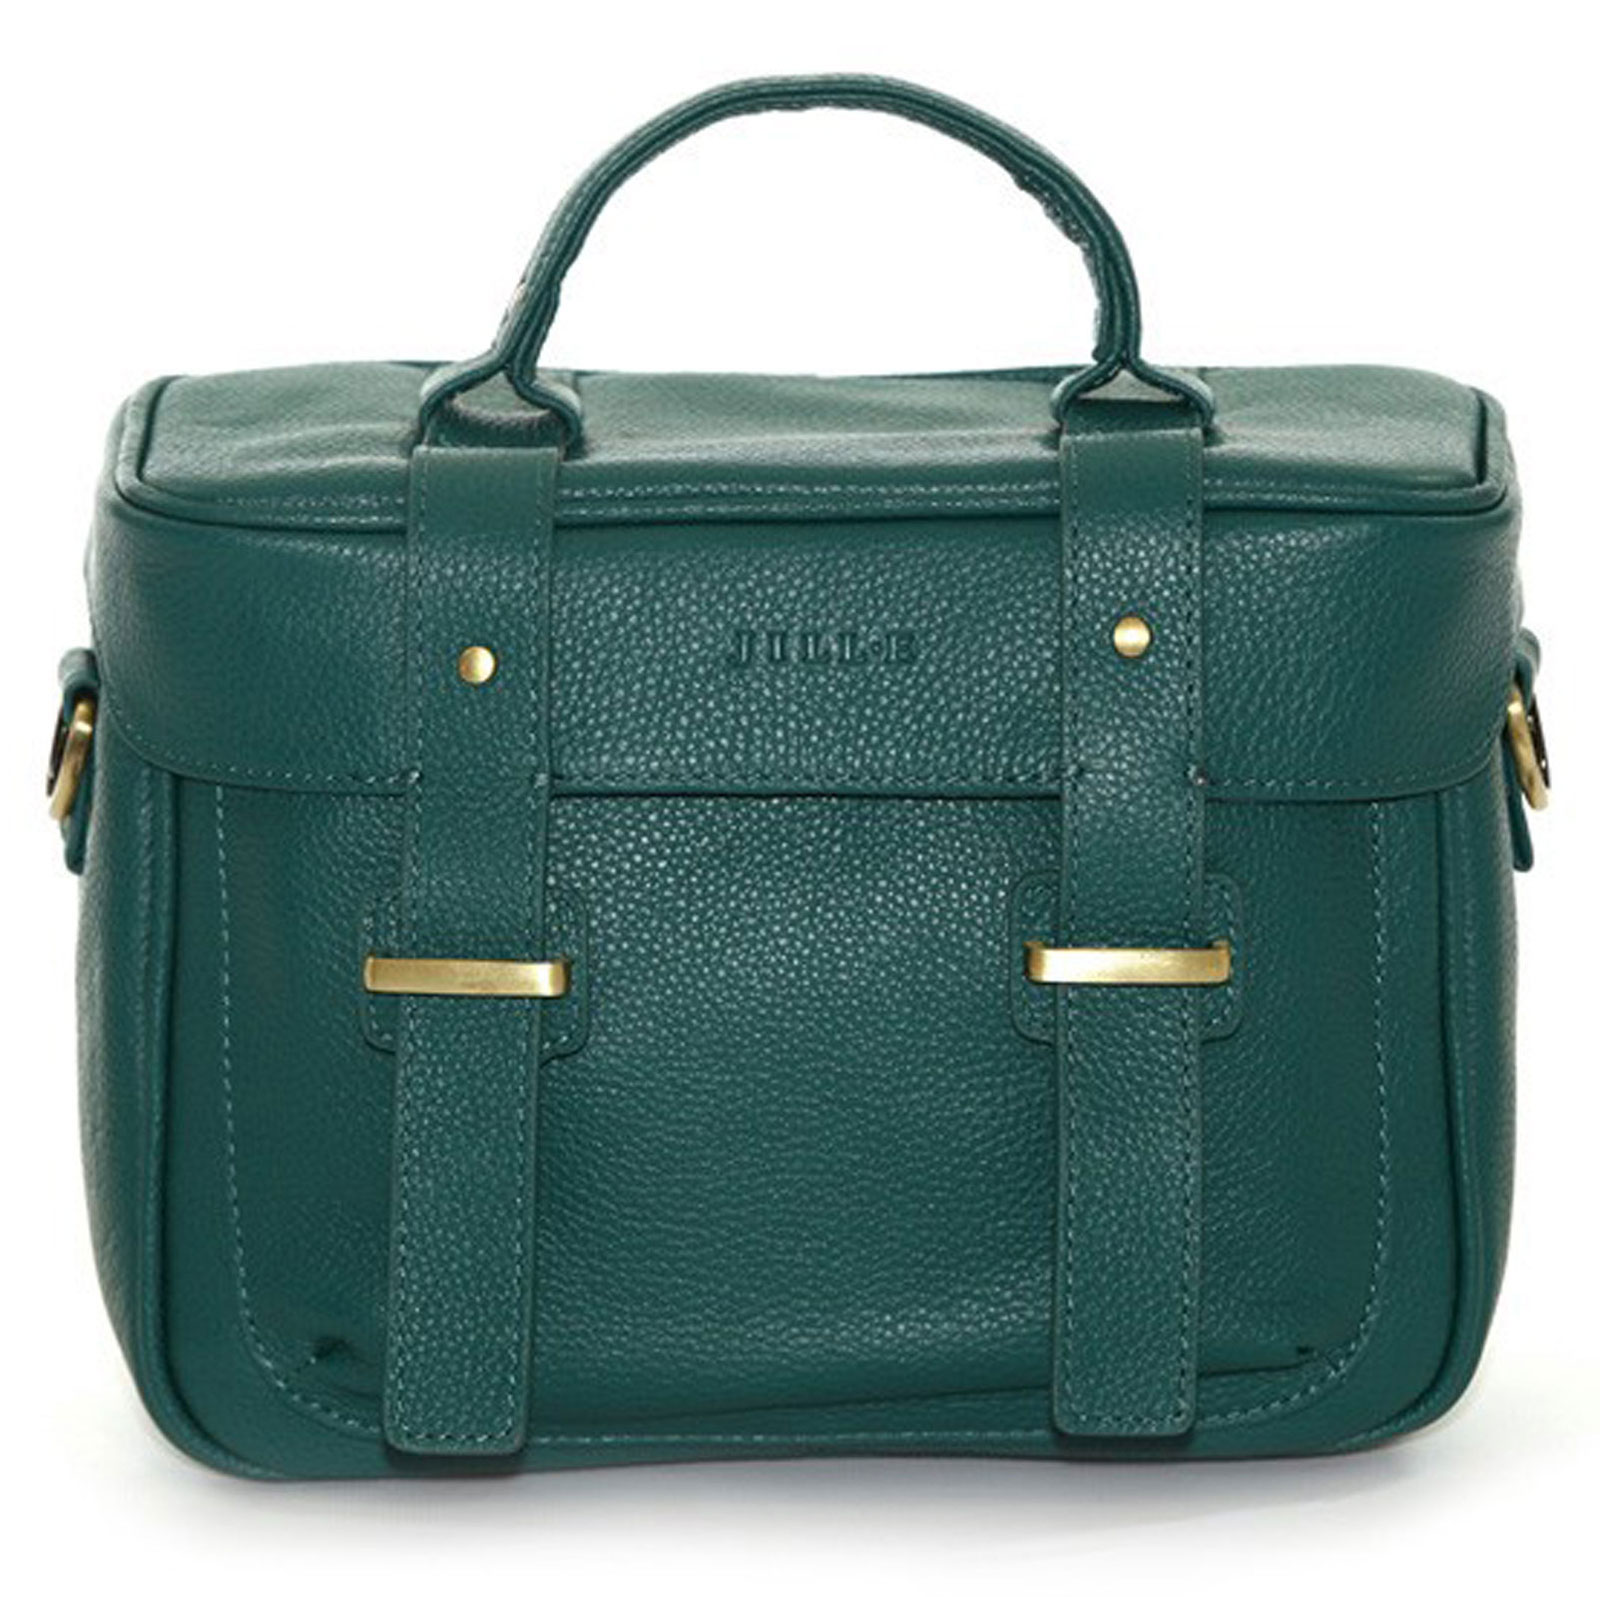 Jill-E Designs LLC Juliette All Camera Bag, Teal